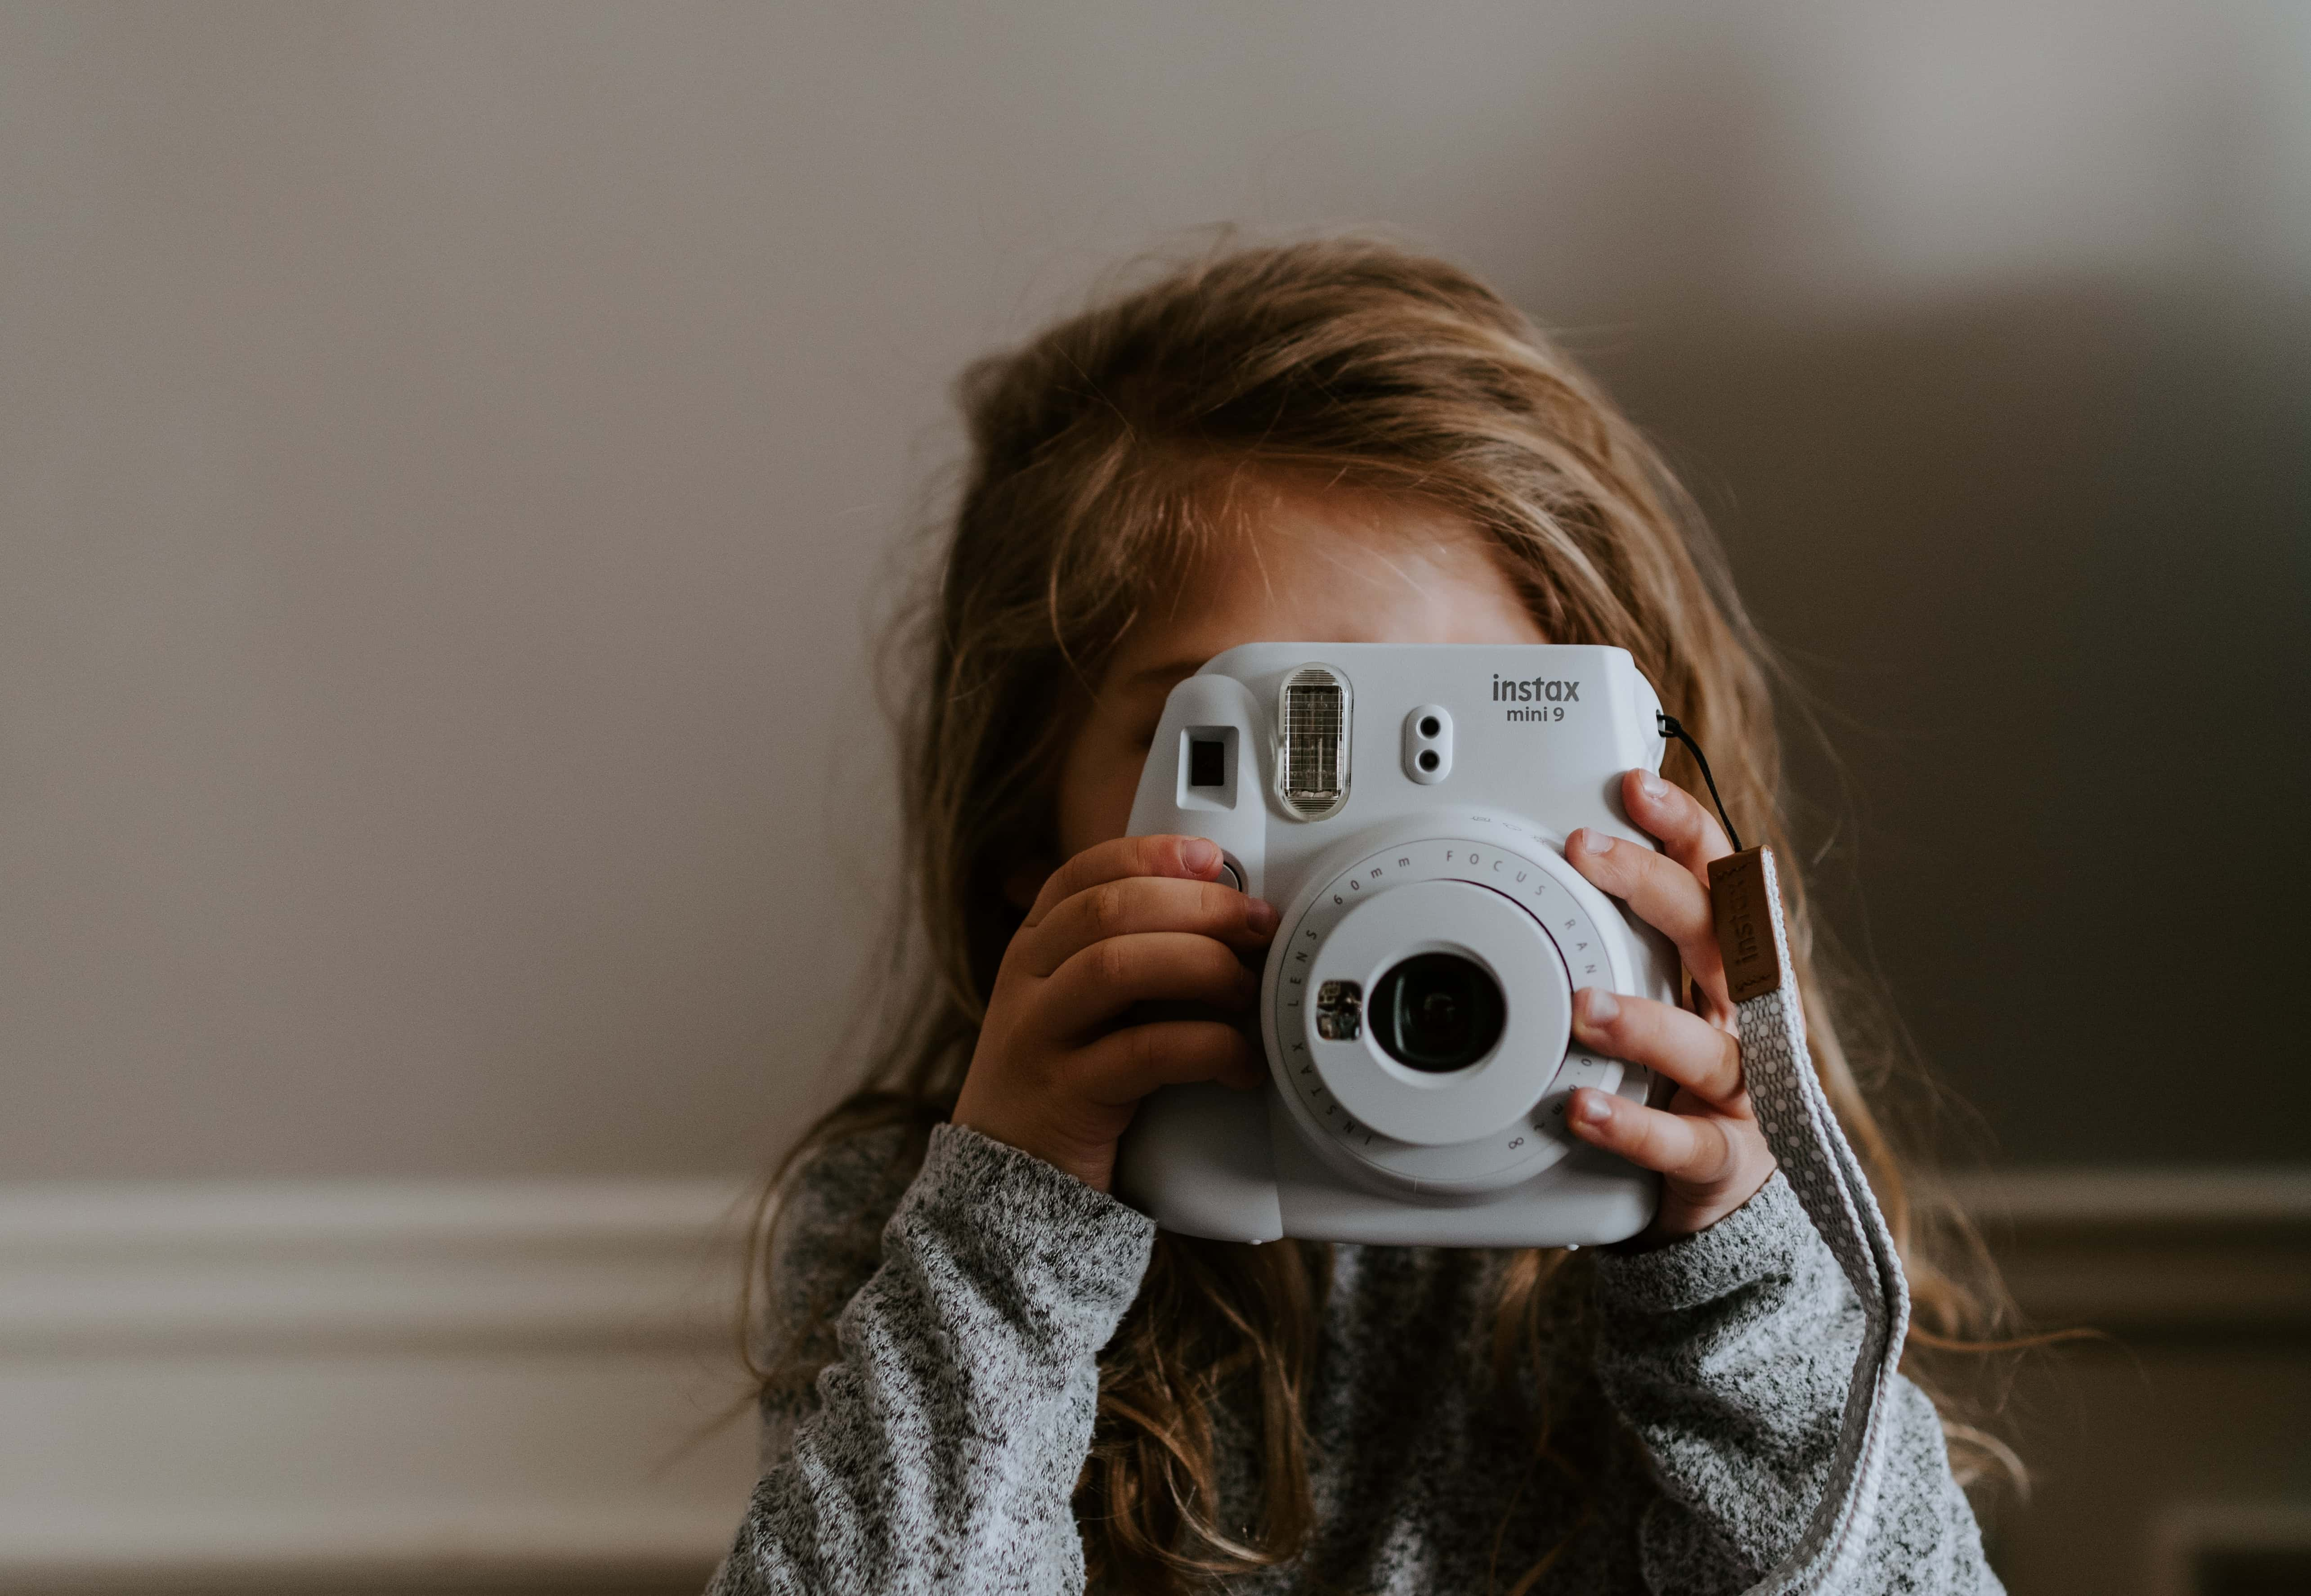 Filmmaking Trends in 2020 - An Image of a Young Child Holding a Camera